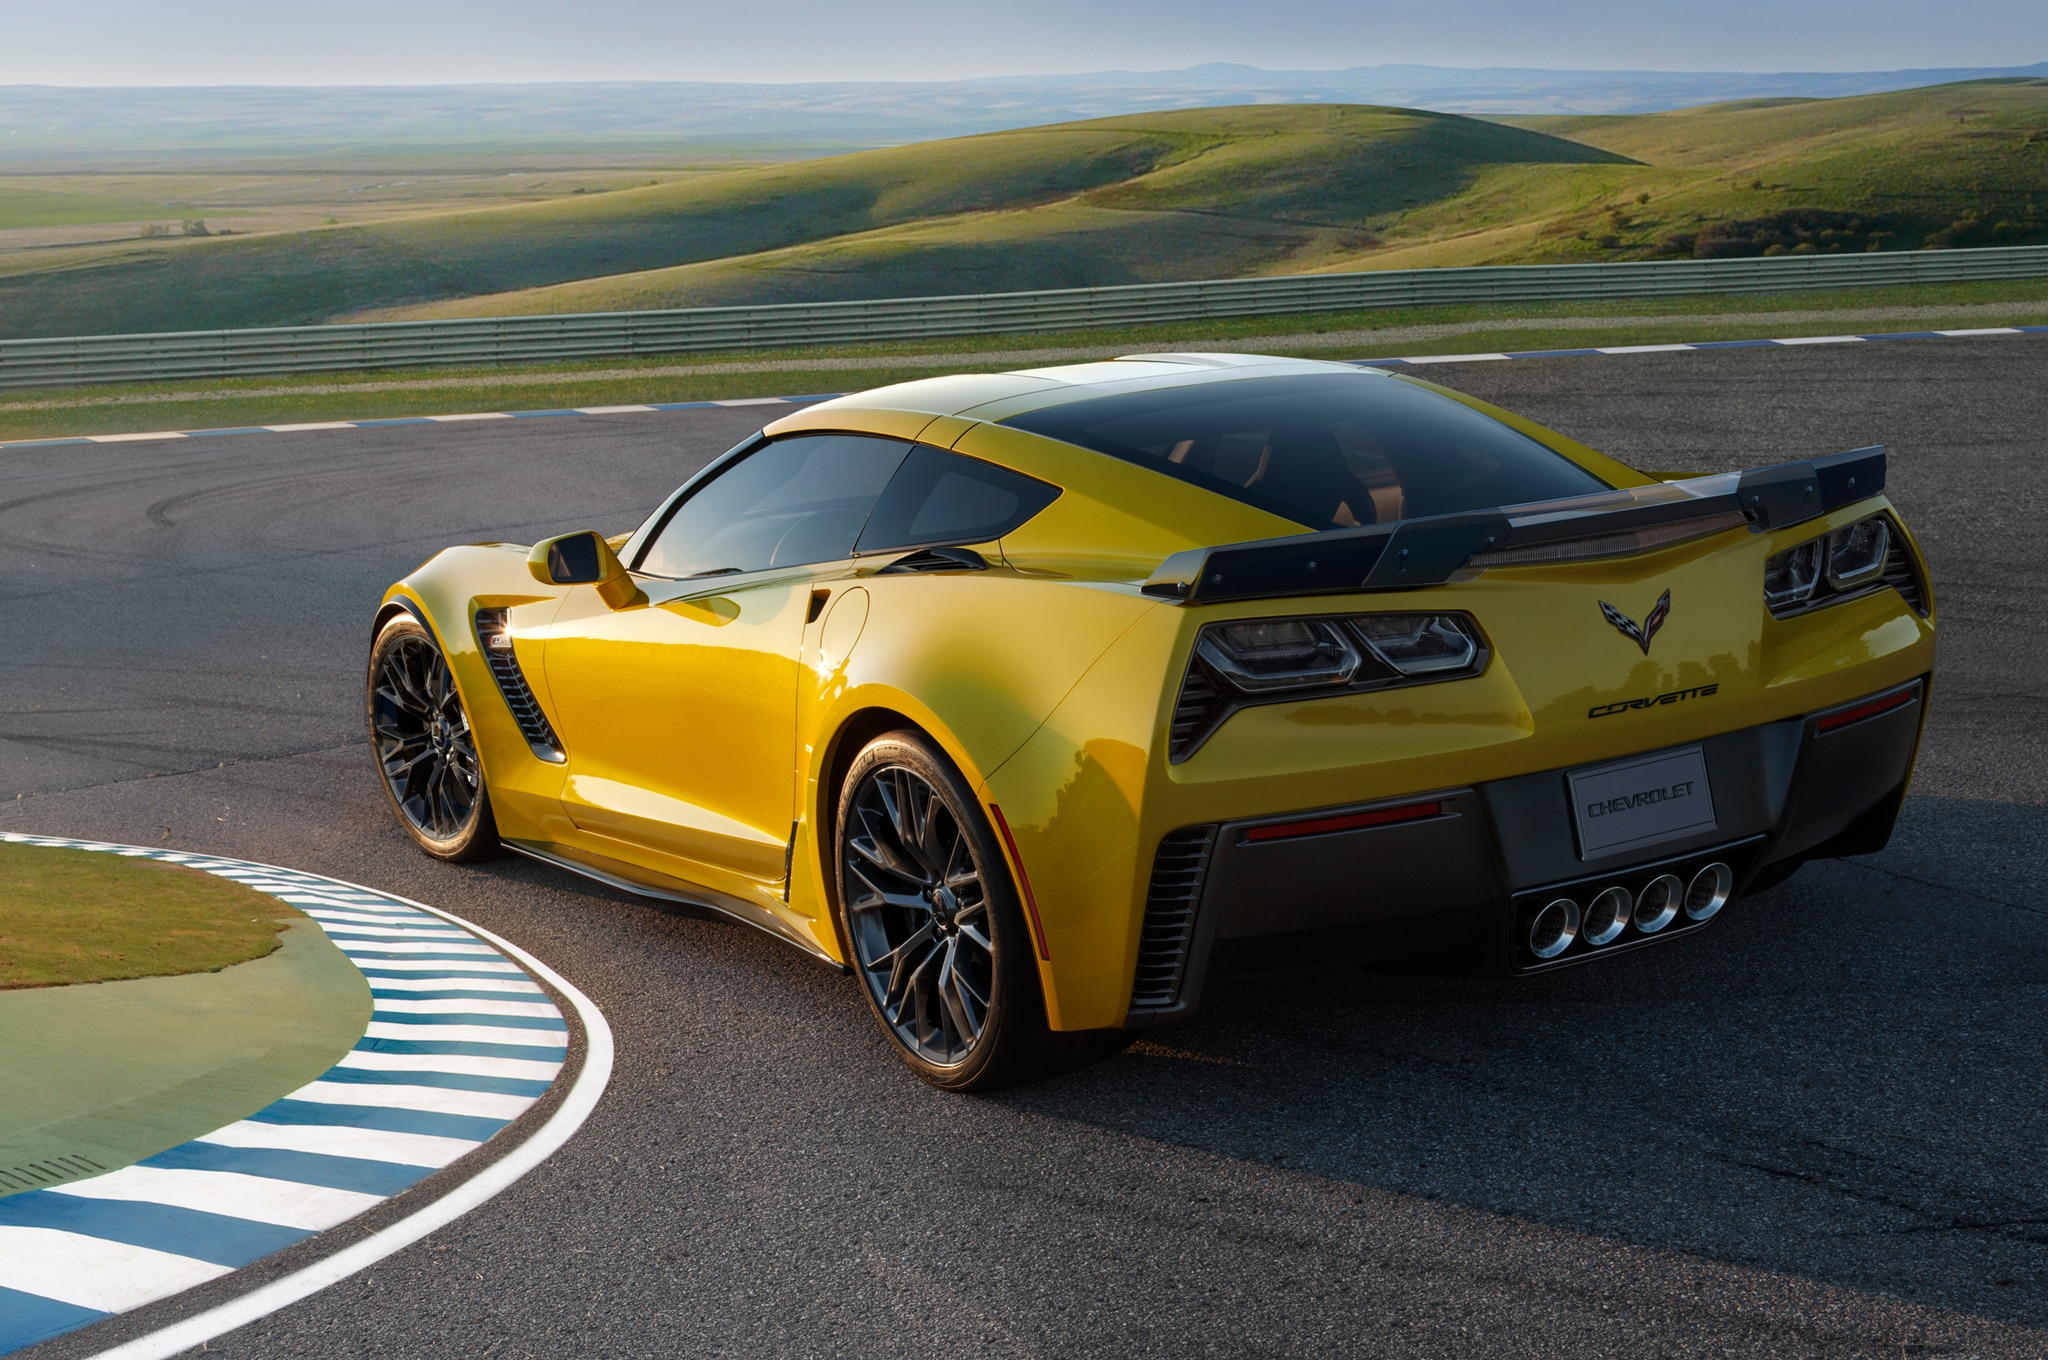 2015 Chevrolet Corvette Z06 Priced At $78,995, Convertible